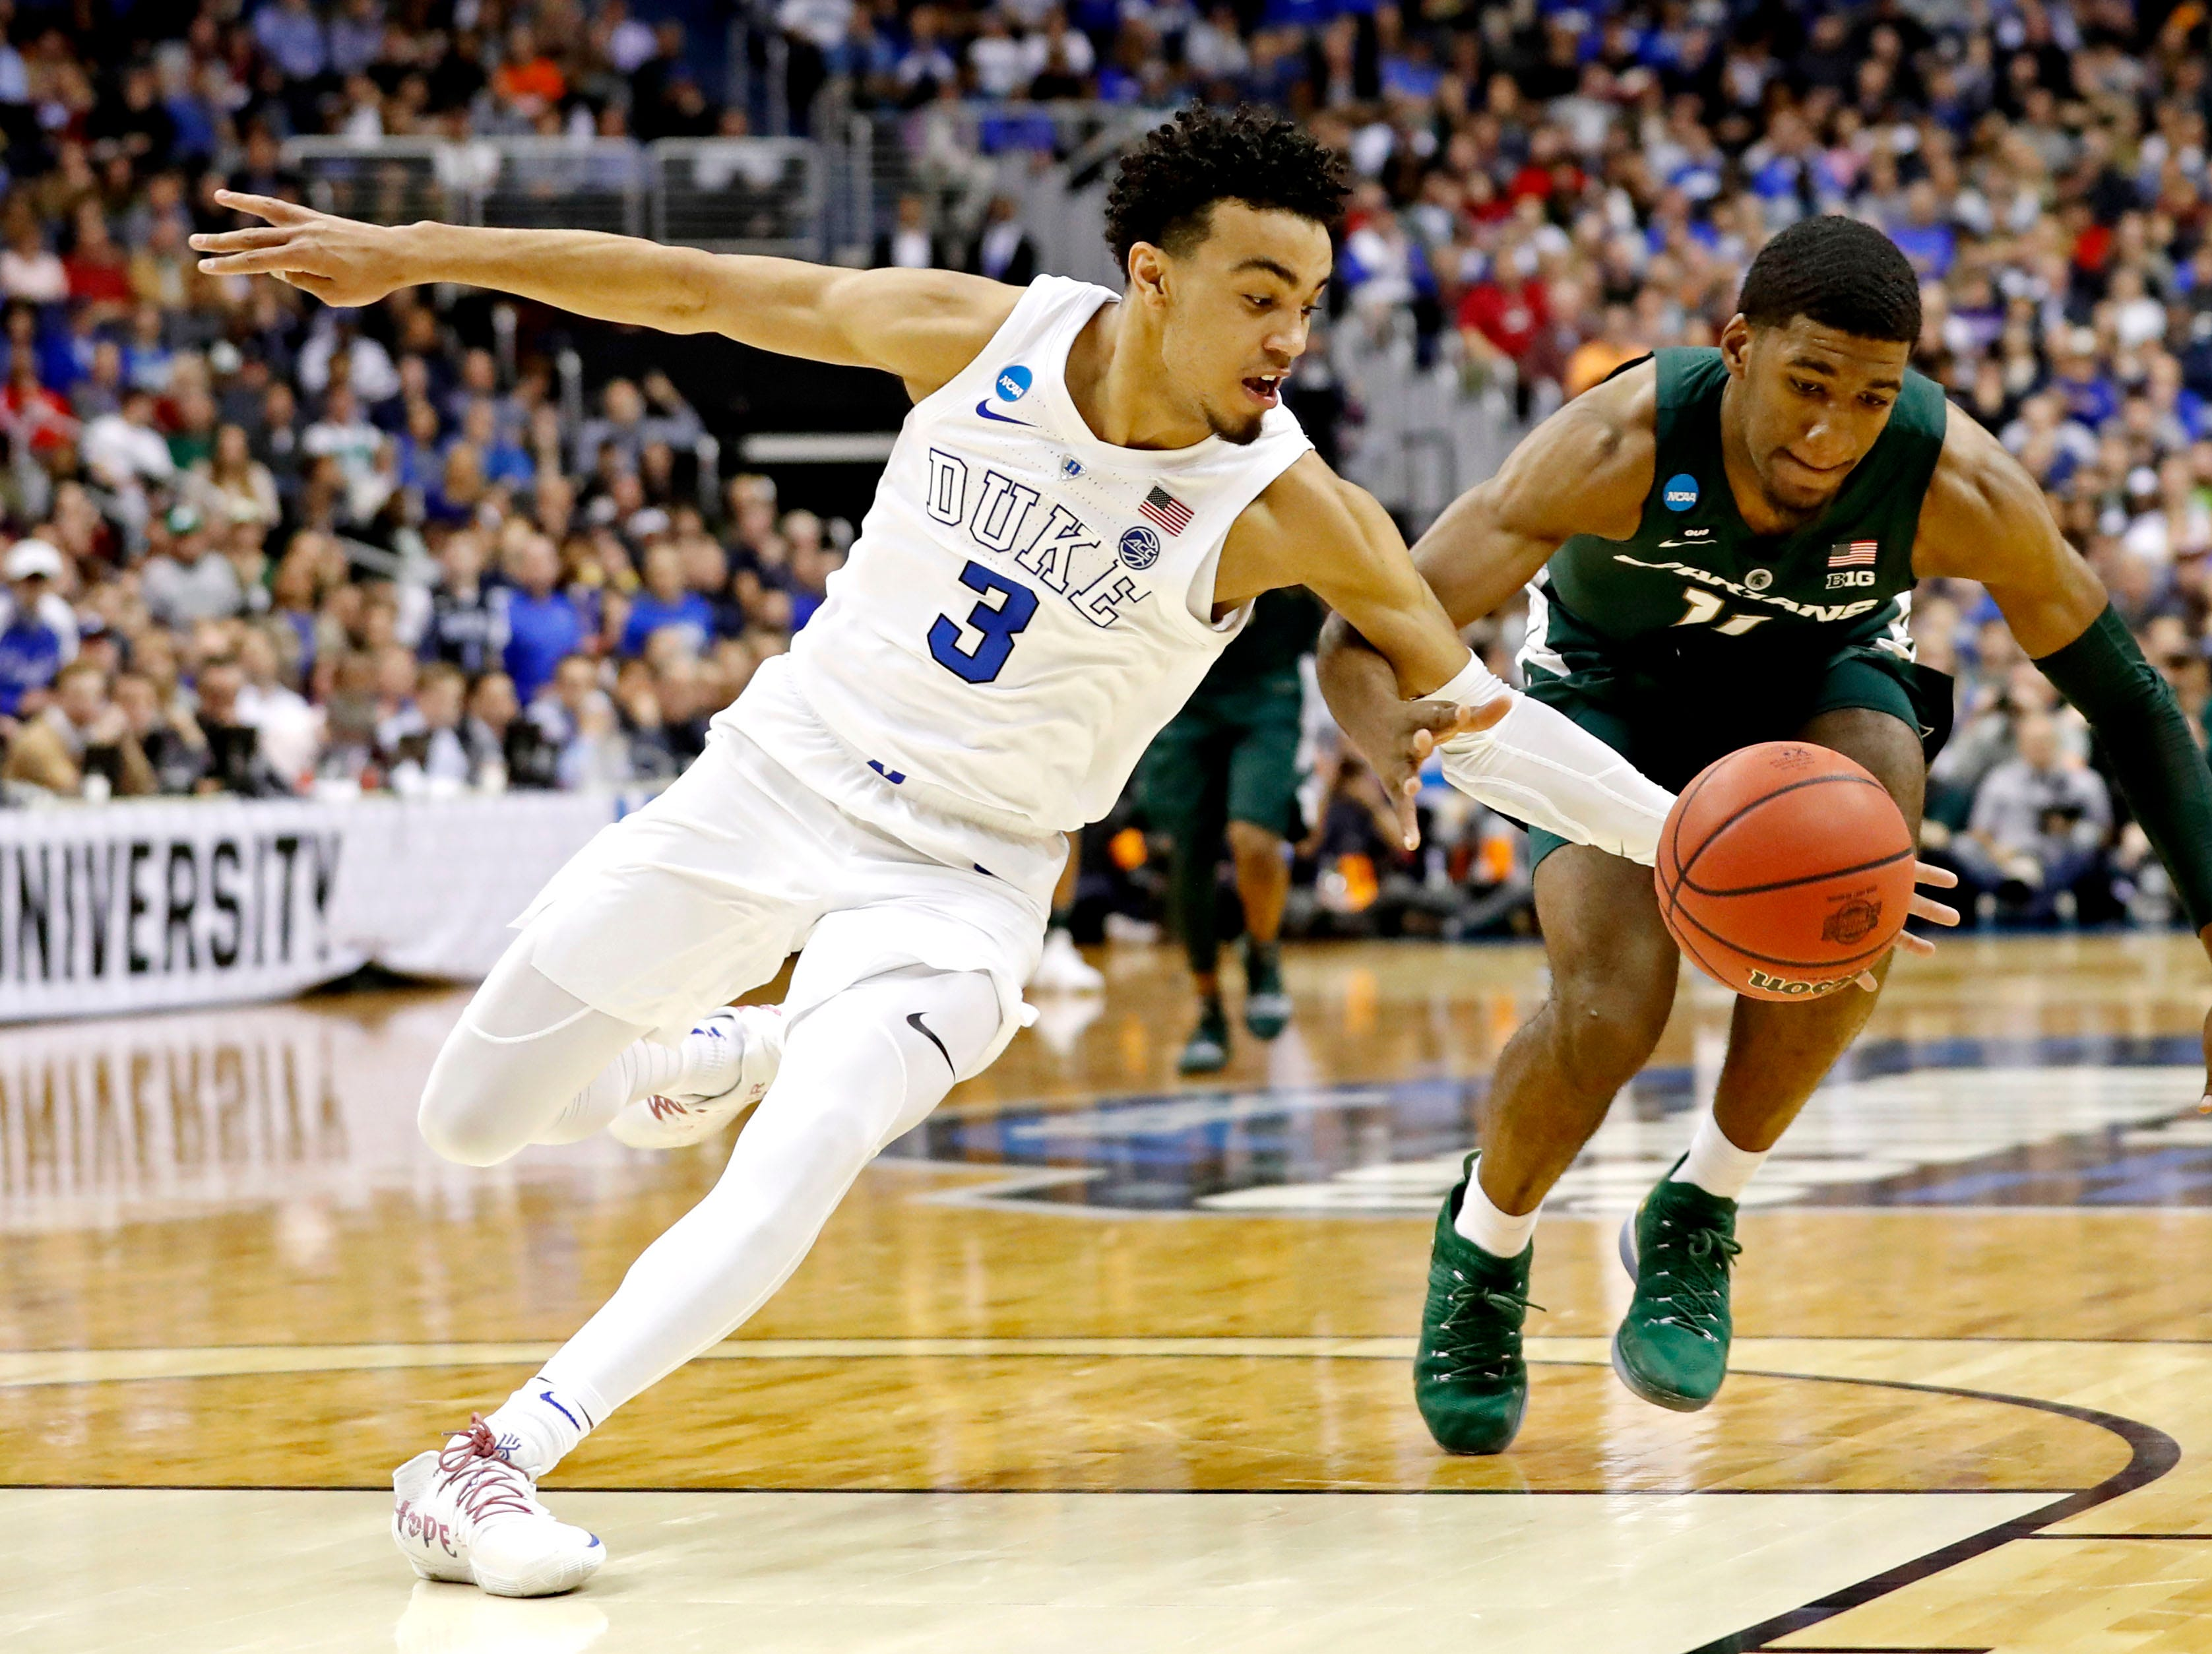 Mar 31, 2019; Washington, DC, USA; Duke Blue Devils guard Tre Jones (3) and Michigan State Spartans forward Aaron Henry (11) go for a loose ball during the first half in the championship game of the east regional of the 2019 NCAA Tournament at Capital One Arena. Mandatory Credit: Geoff Burke-USA TODAY Sports